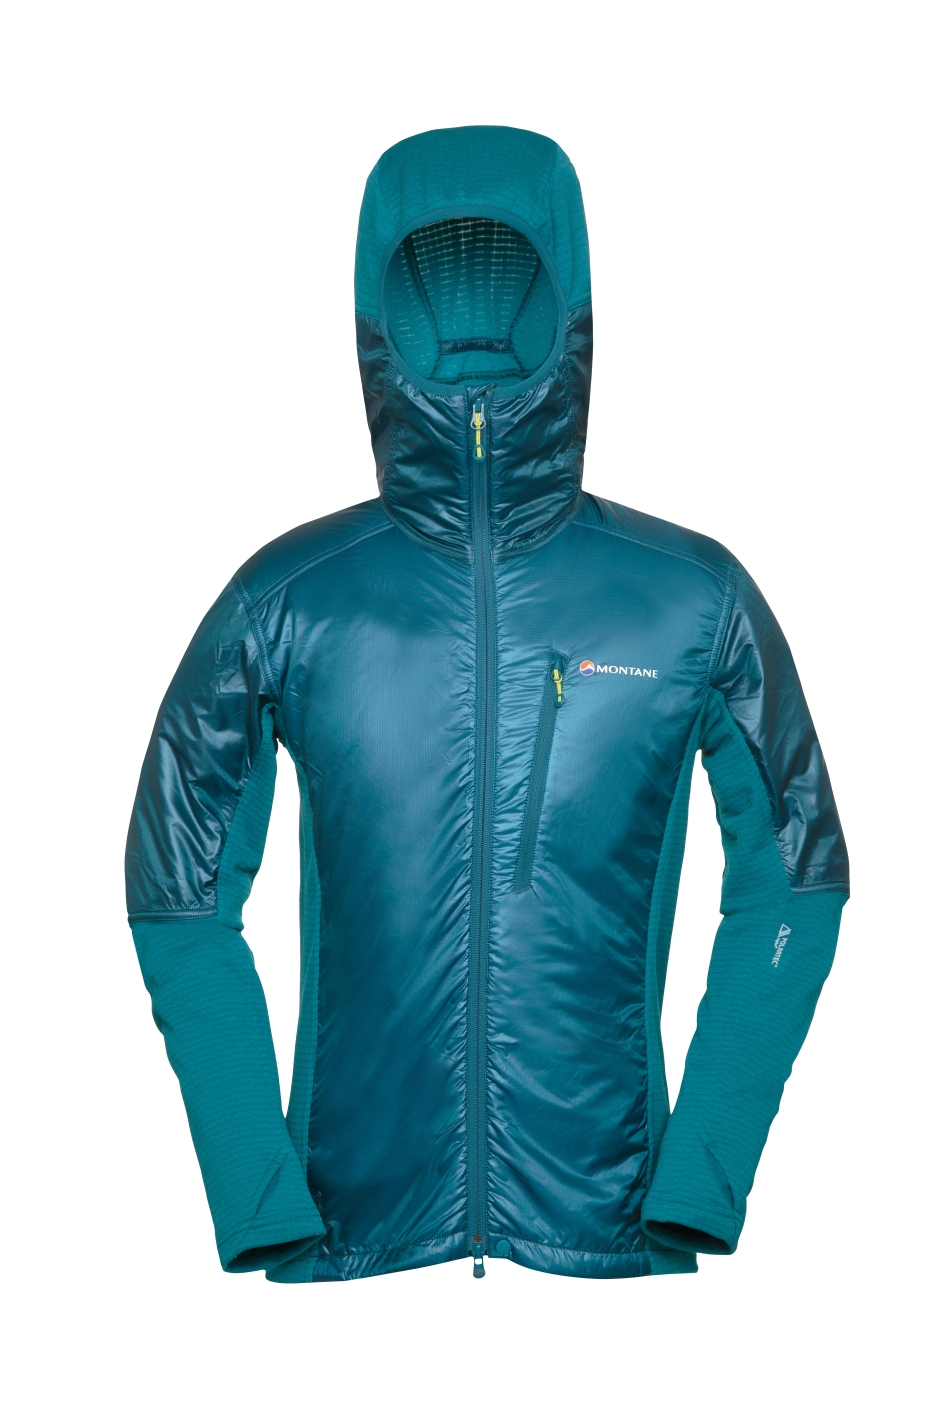 1001115 - Fusion Alpha - Zanskar Blue - Front Hood up